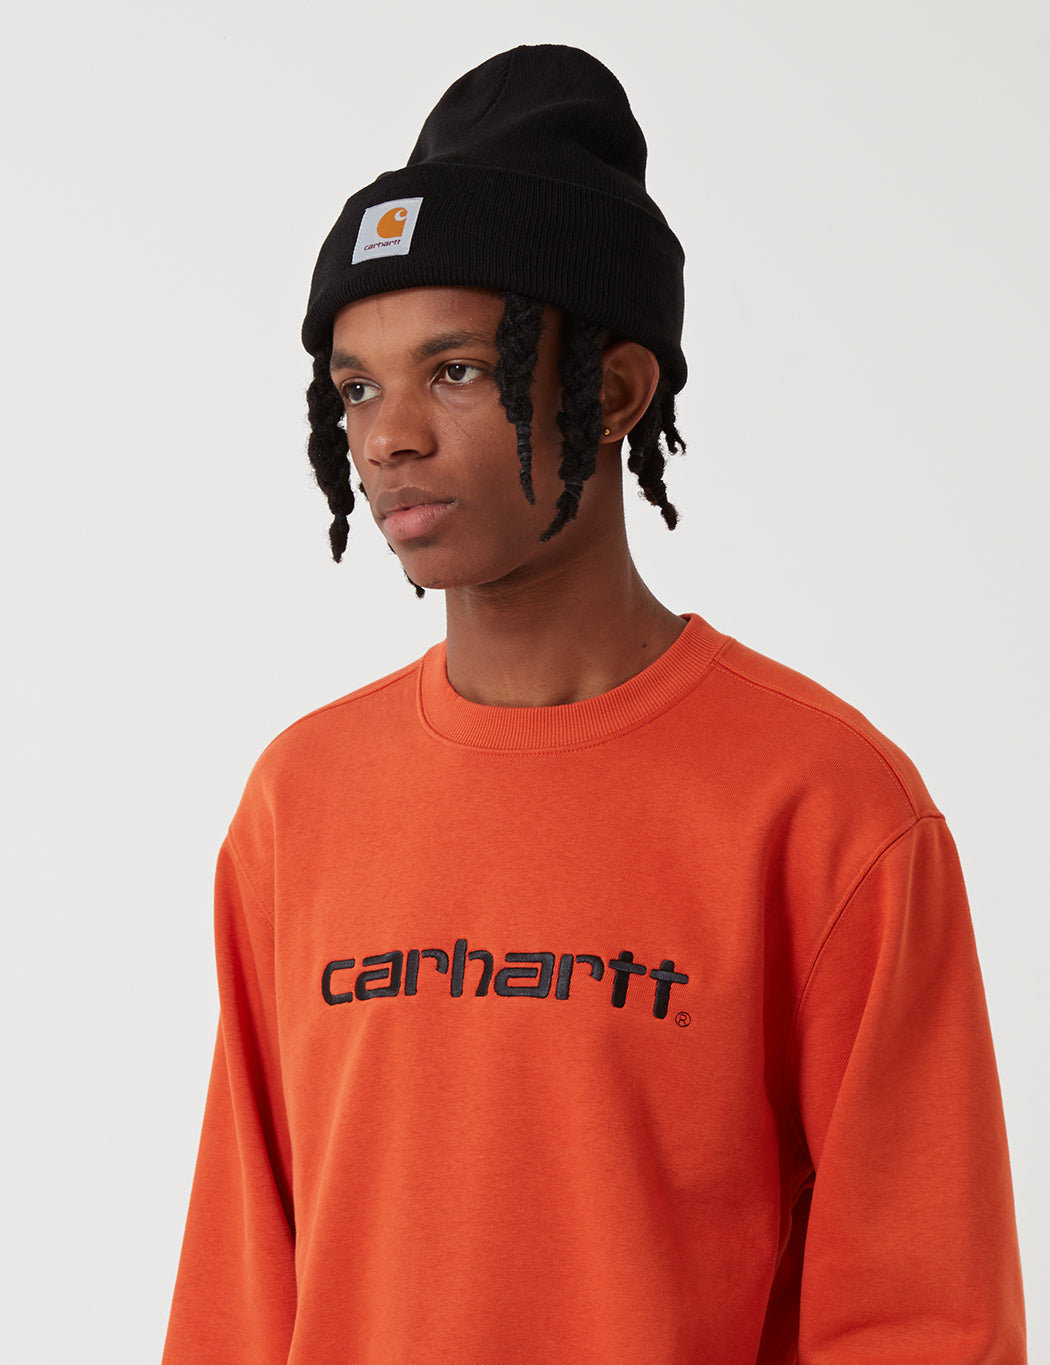 Carhartt OG Logo Sweatshirt - Persimmon Orange